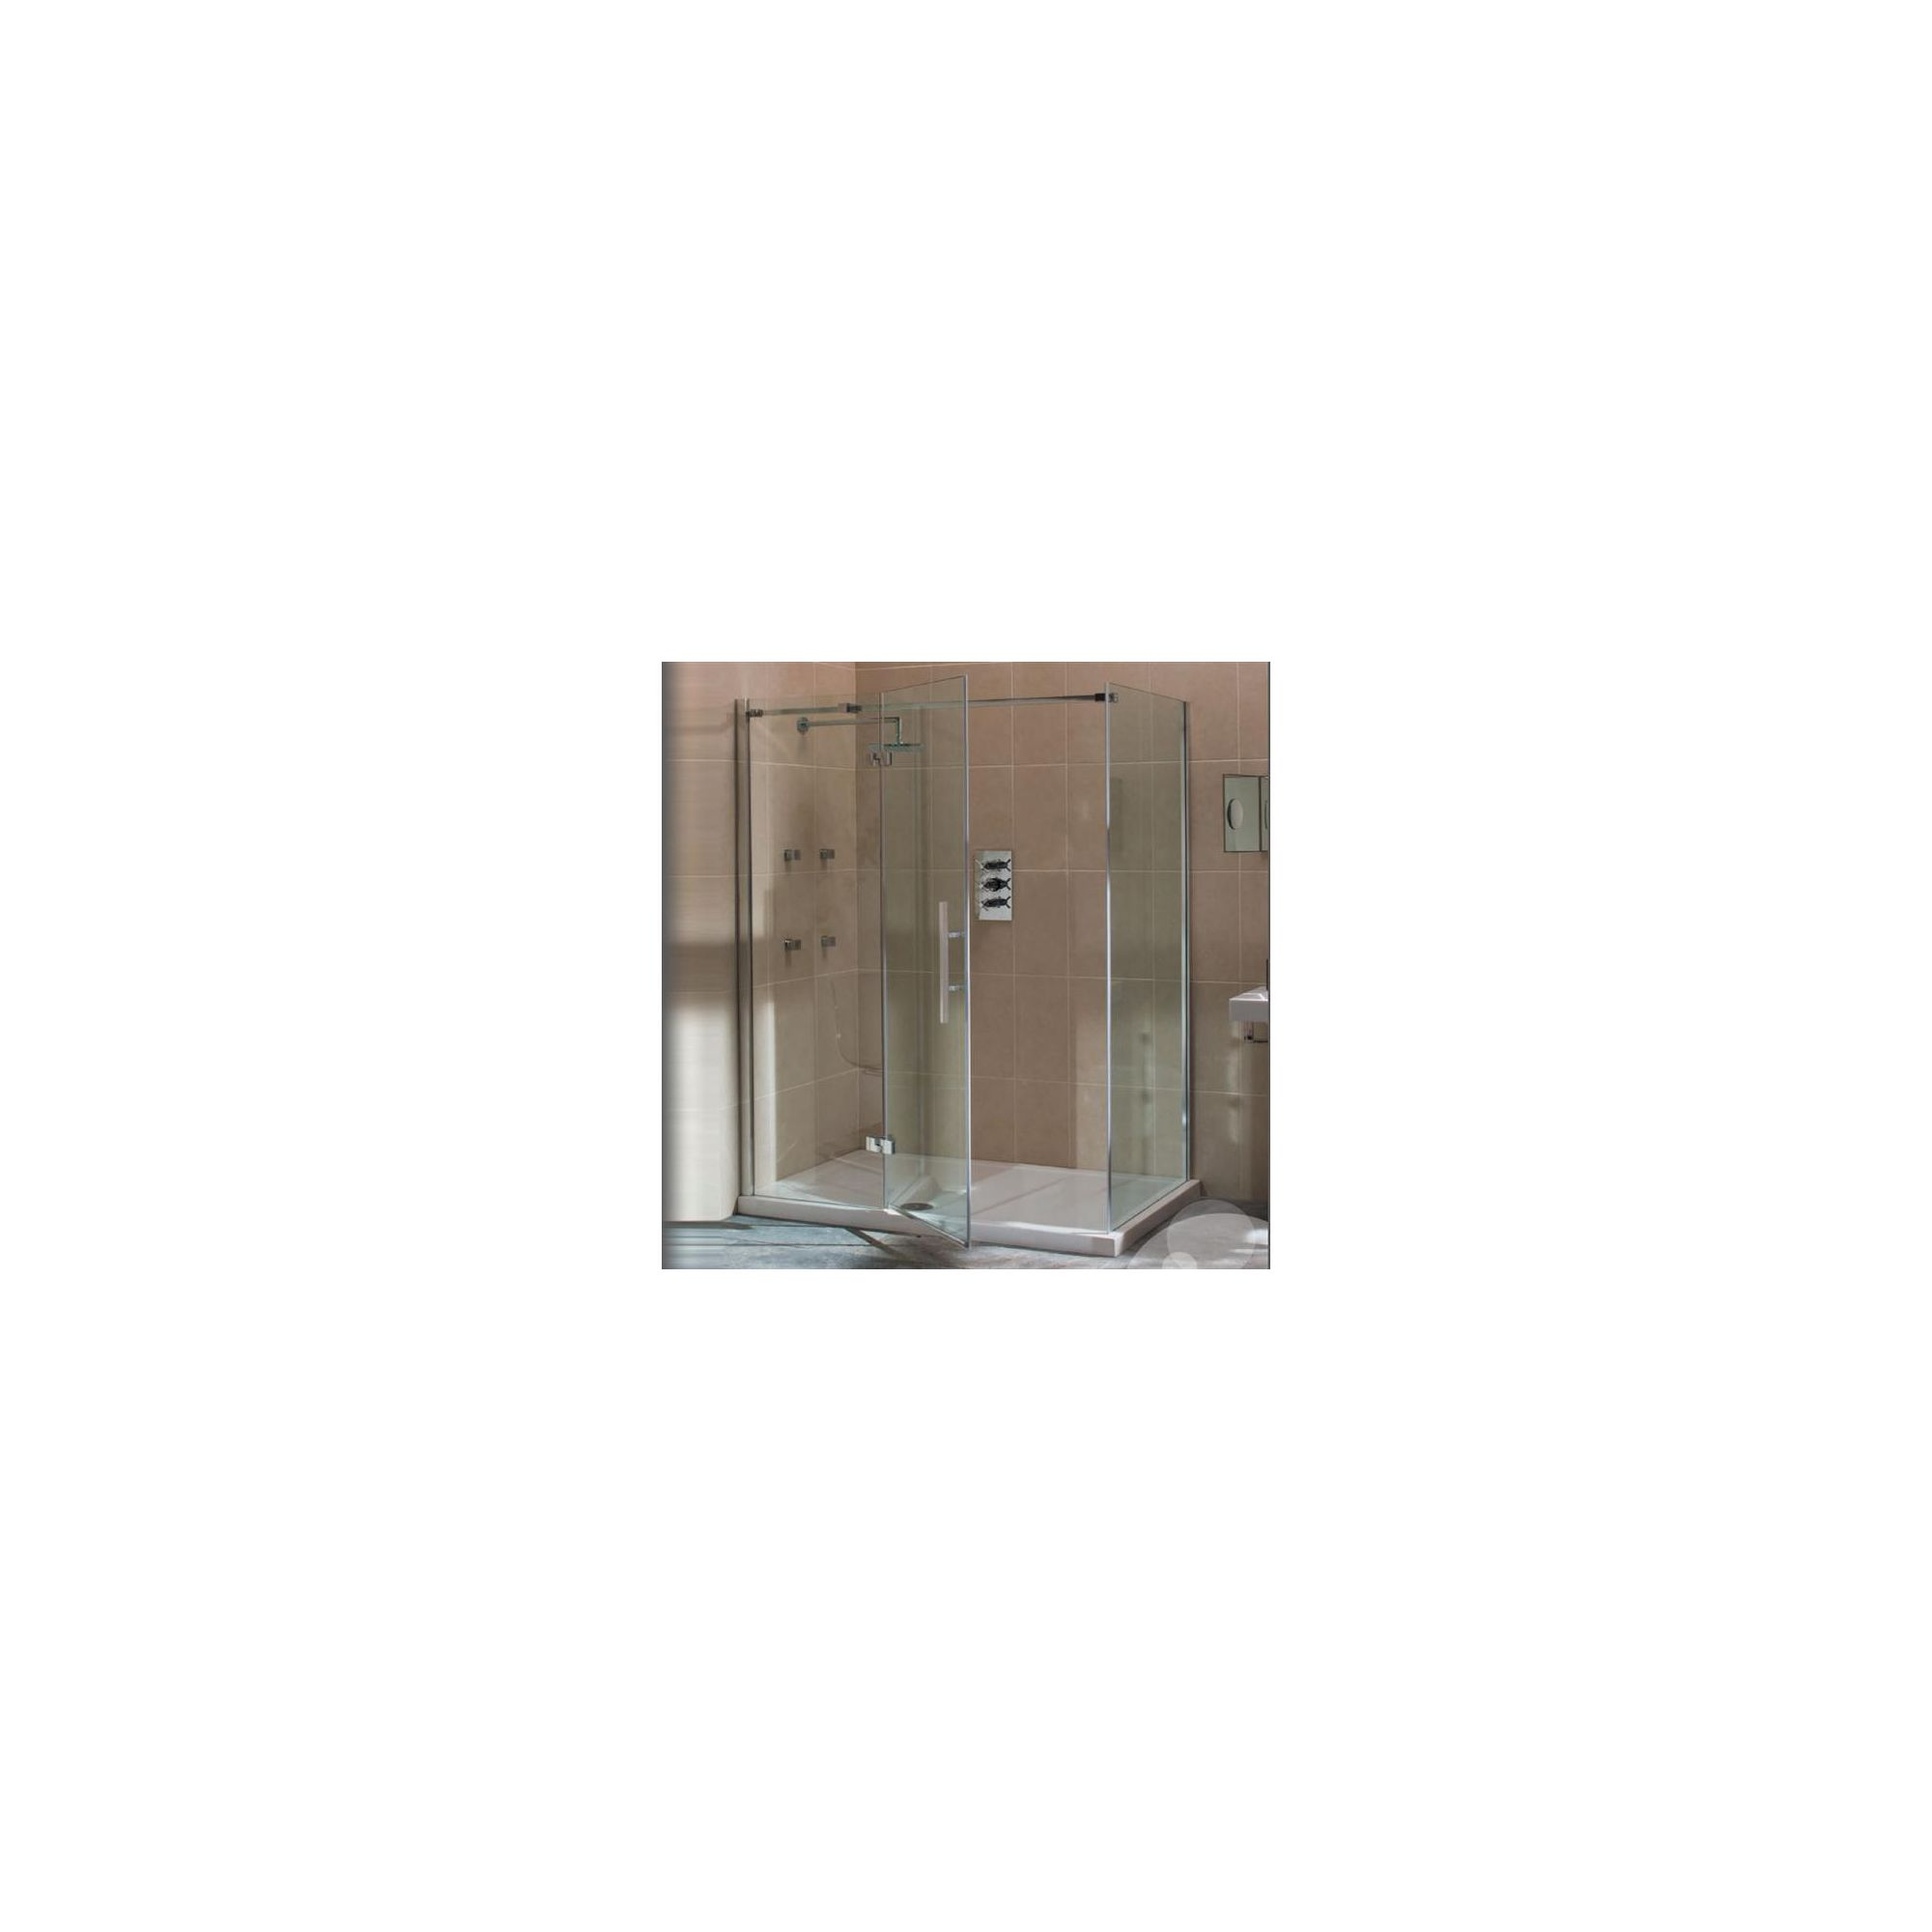 Merlyn Vivid Nine Hinged Door Shower Enclosure with Inline Panel, 1200mm x 800mm, Left Handed, Low Profile Tray, 8mm Glass at Tescos Direct